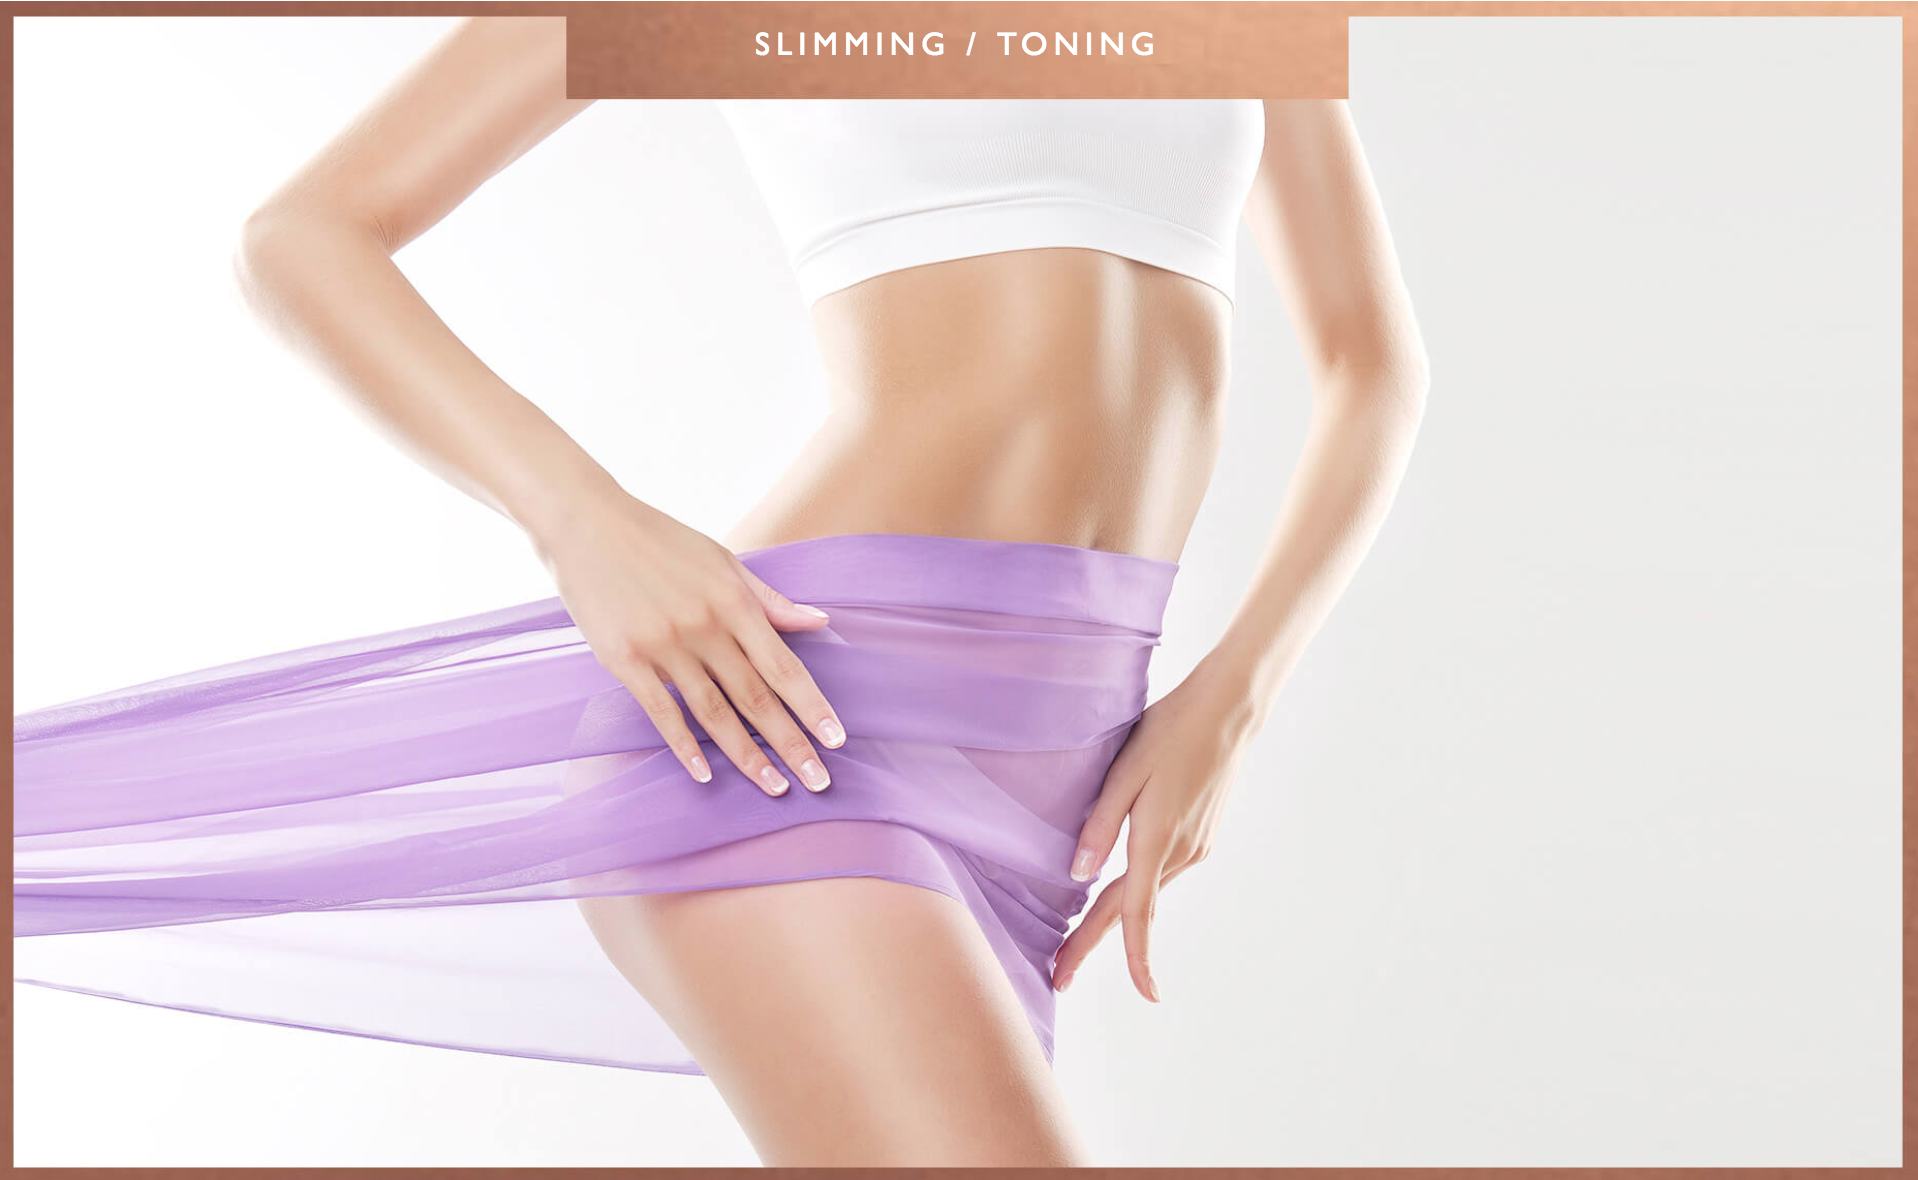 Slimming/ Toning